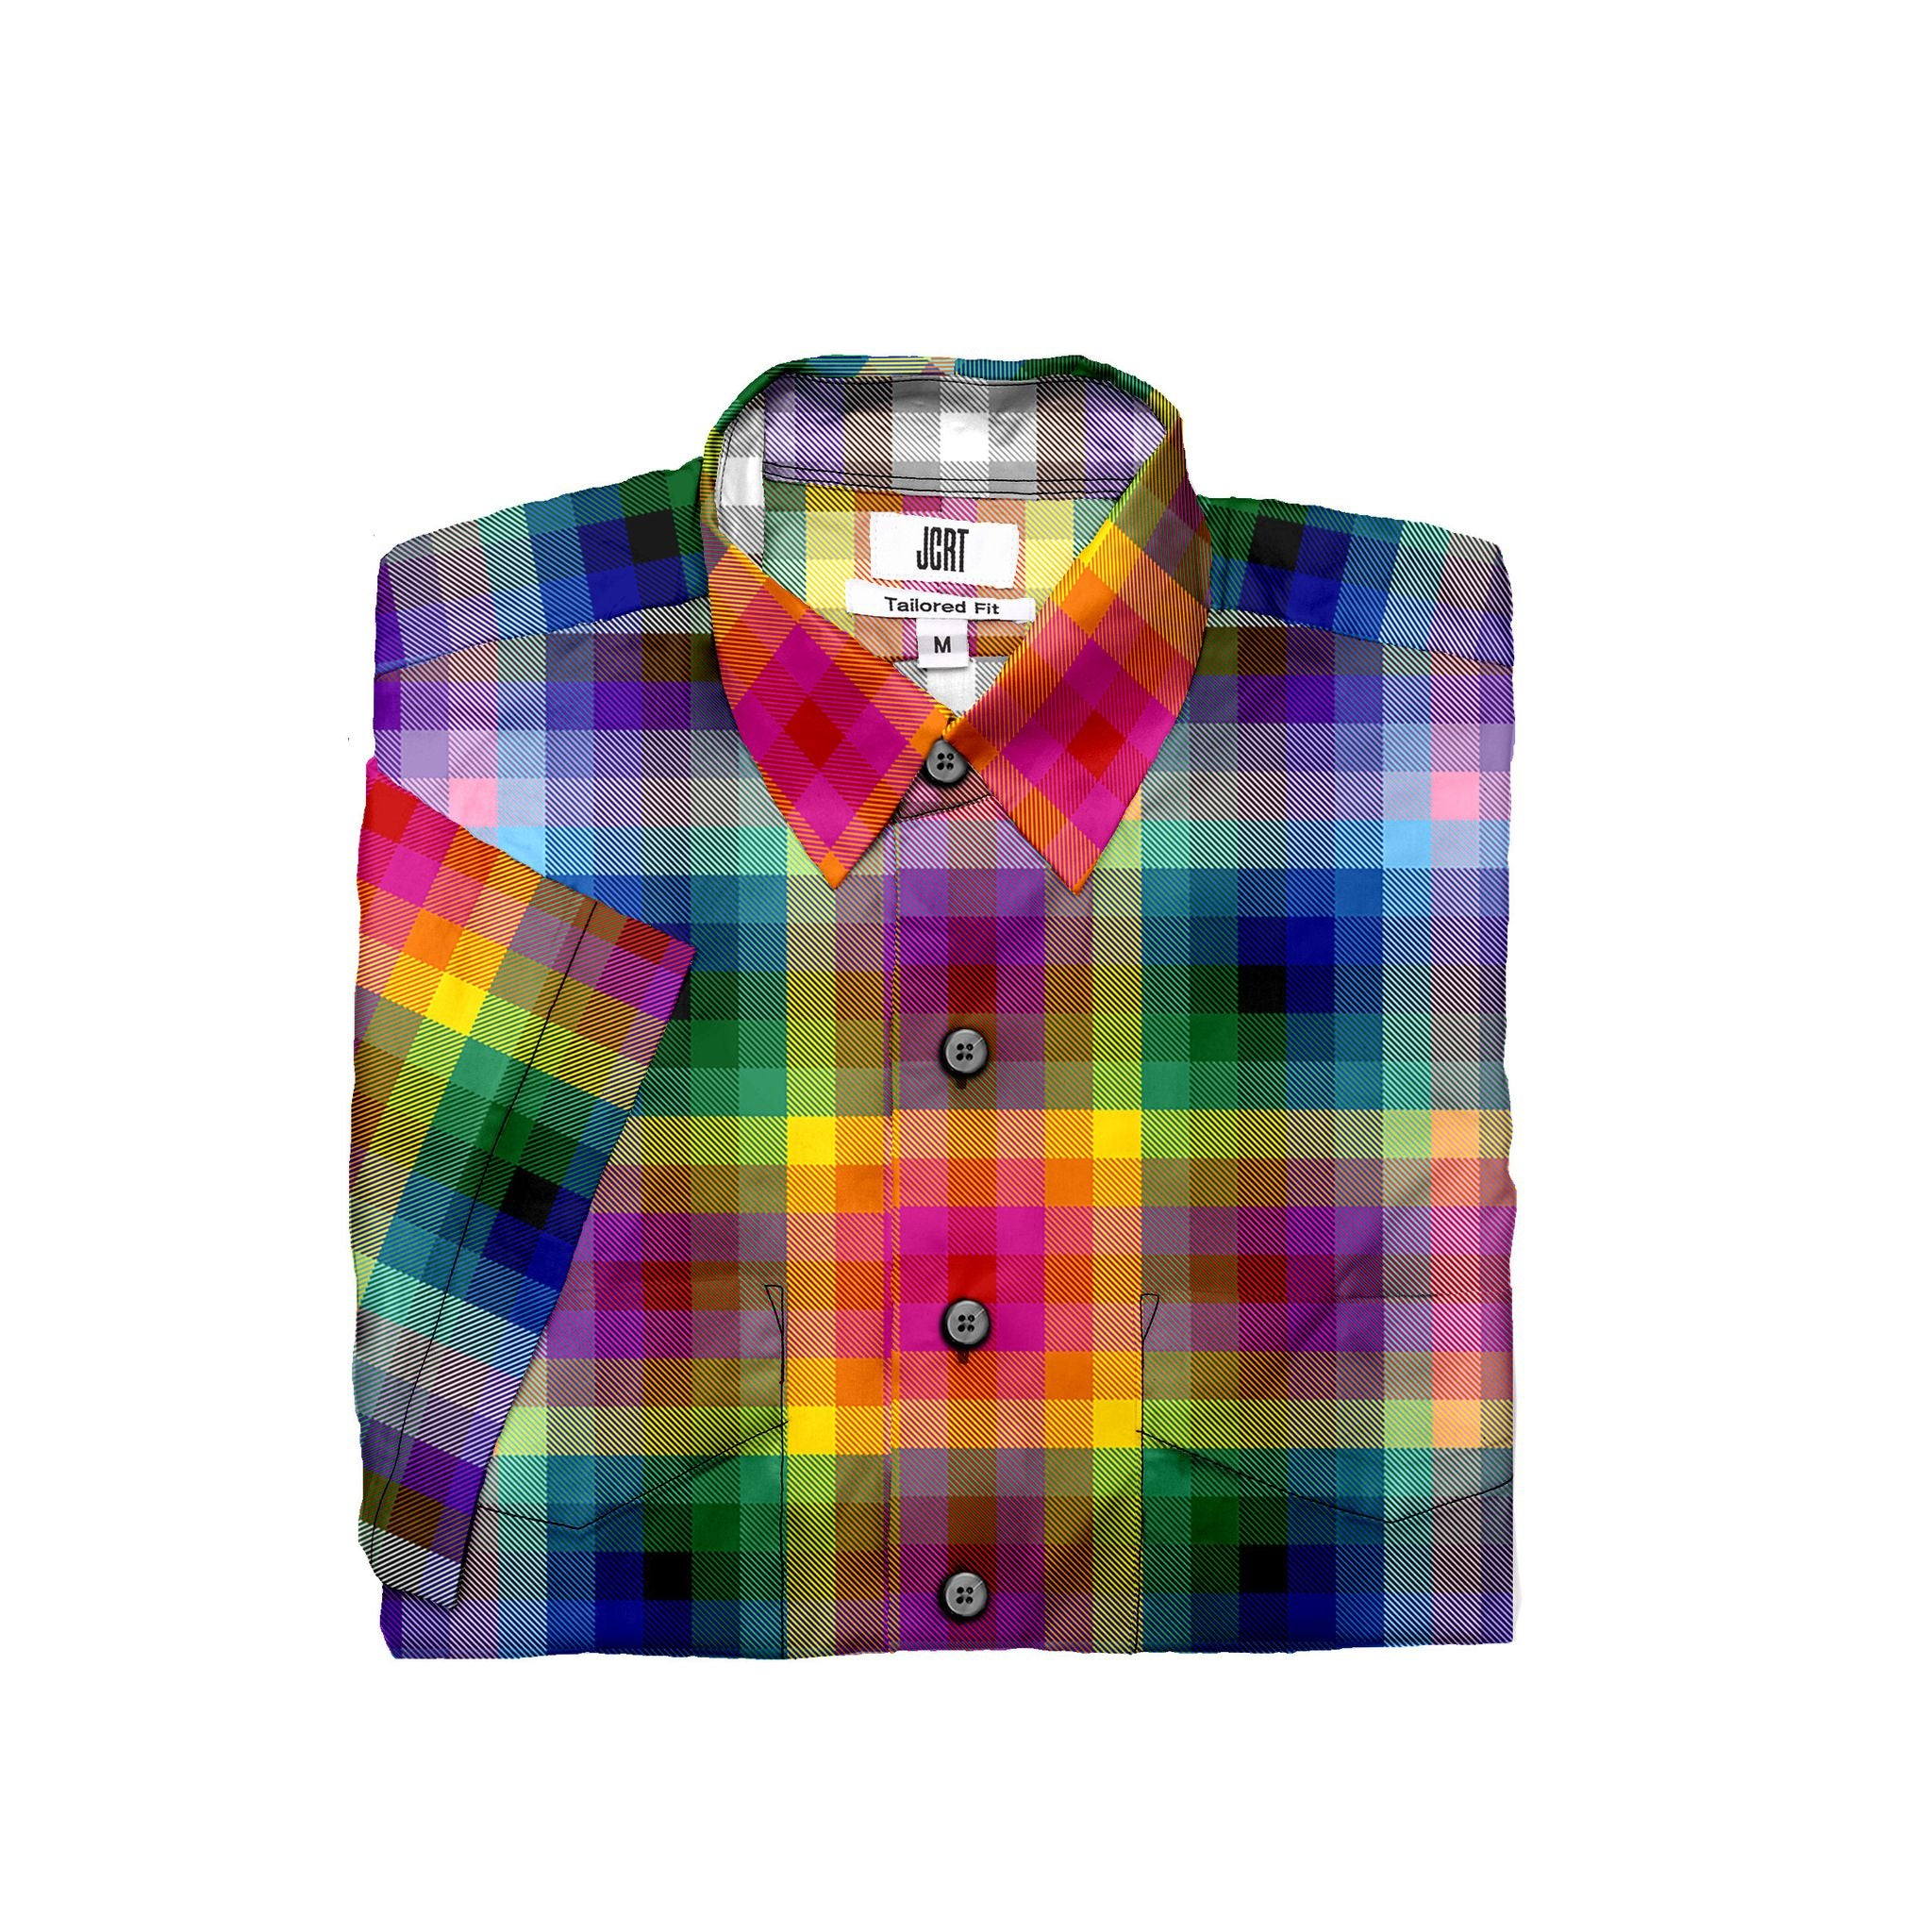 The 2020 Pride Plaid Short Sleeve Shirt